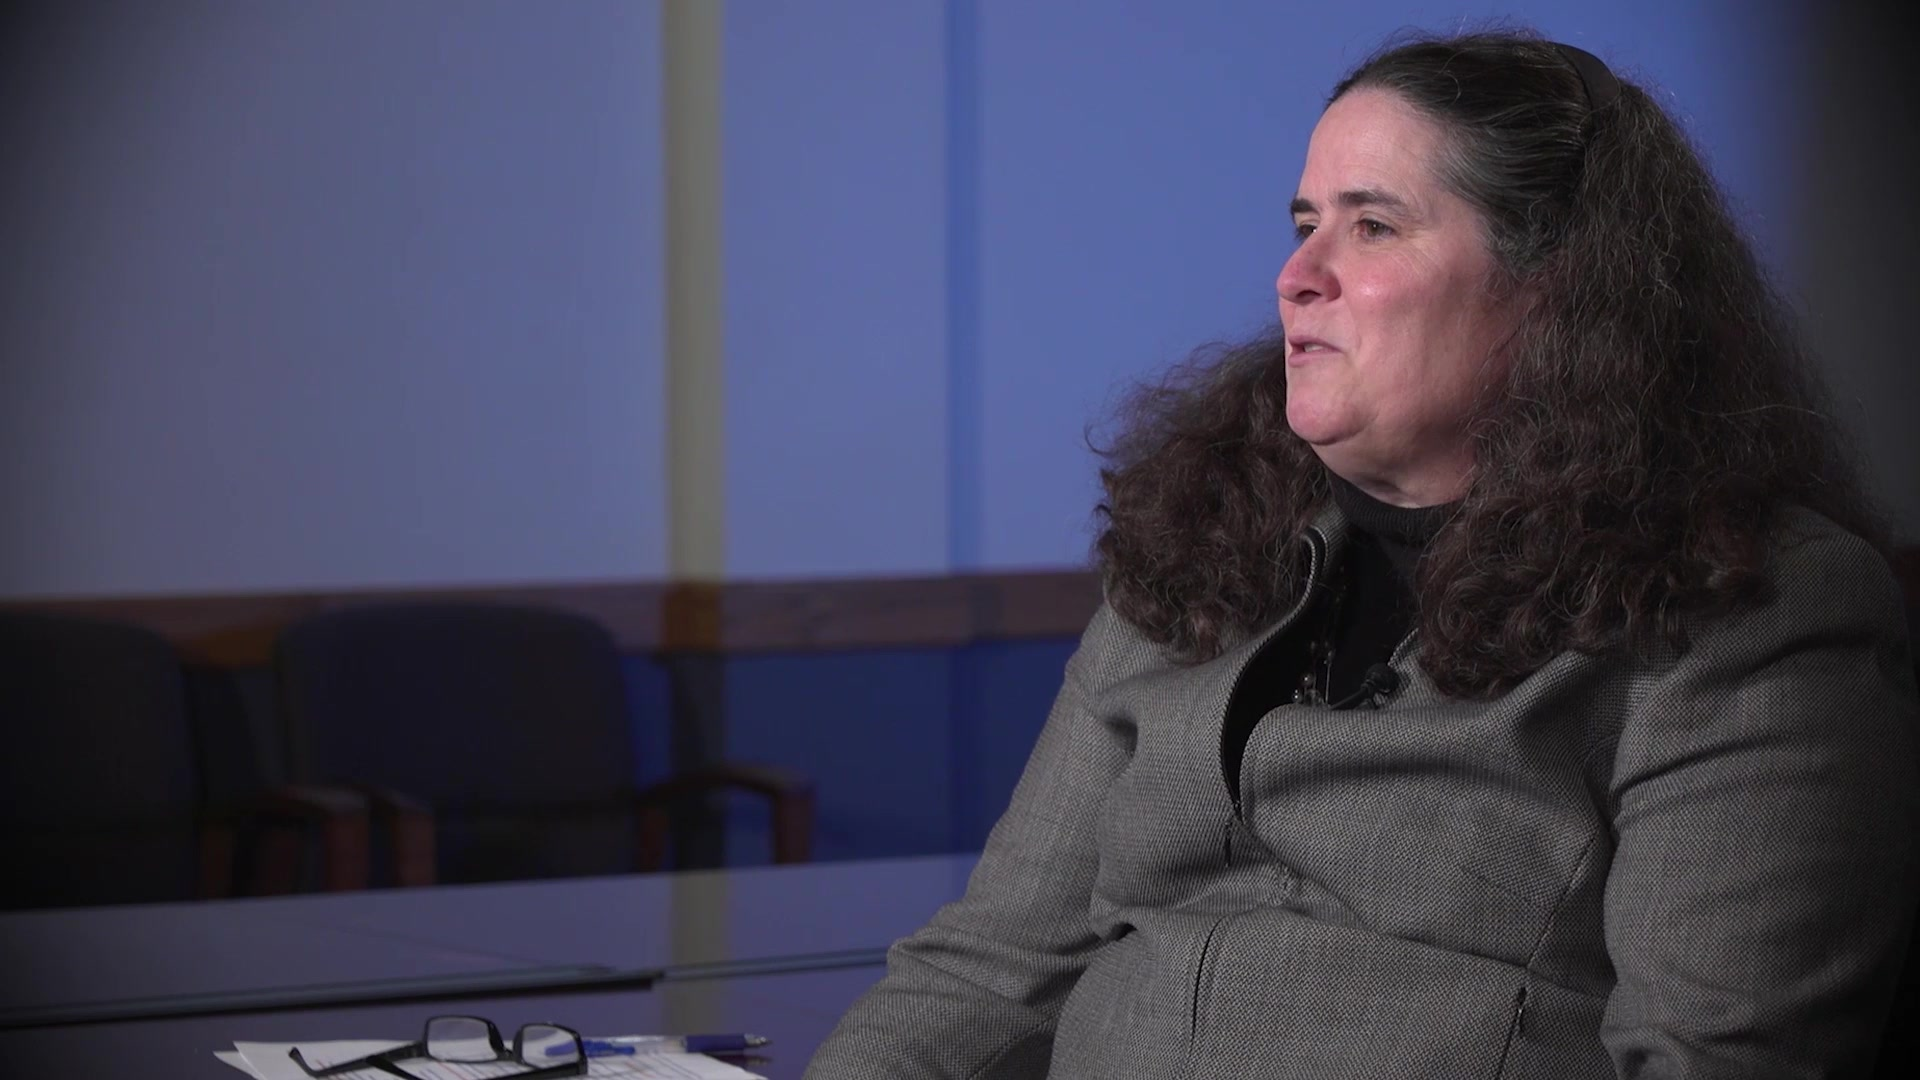 Through the telling of first-person stories, Air Force Materiel Command shares the impact of mentoring as part of the command's mentoring awareness efforts. This interview with Ms. Heidi Bullock, AFMC Director of Contracting and a member of the Senior Executive Service, shares her perspectives on the importance of mentorship.